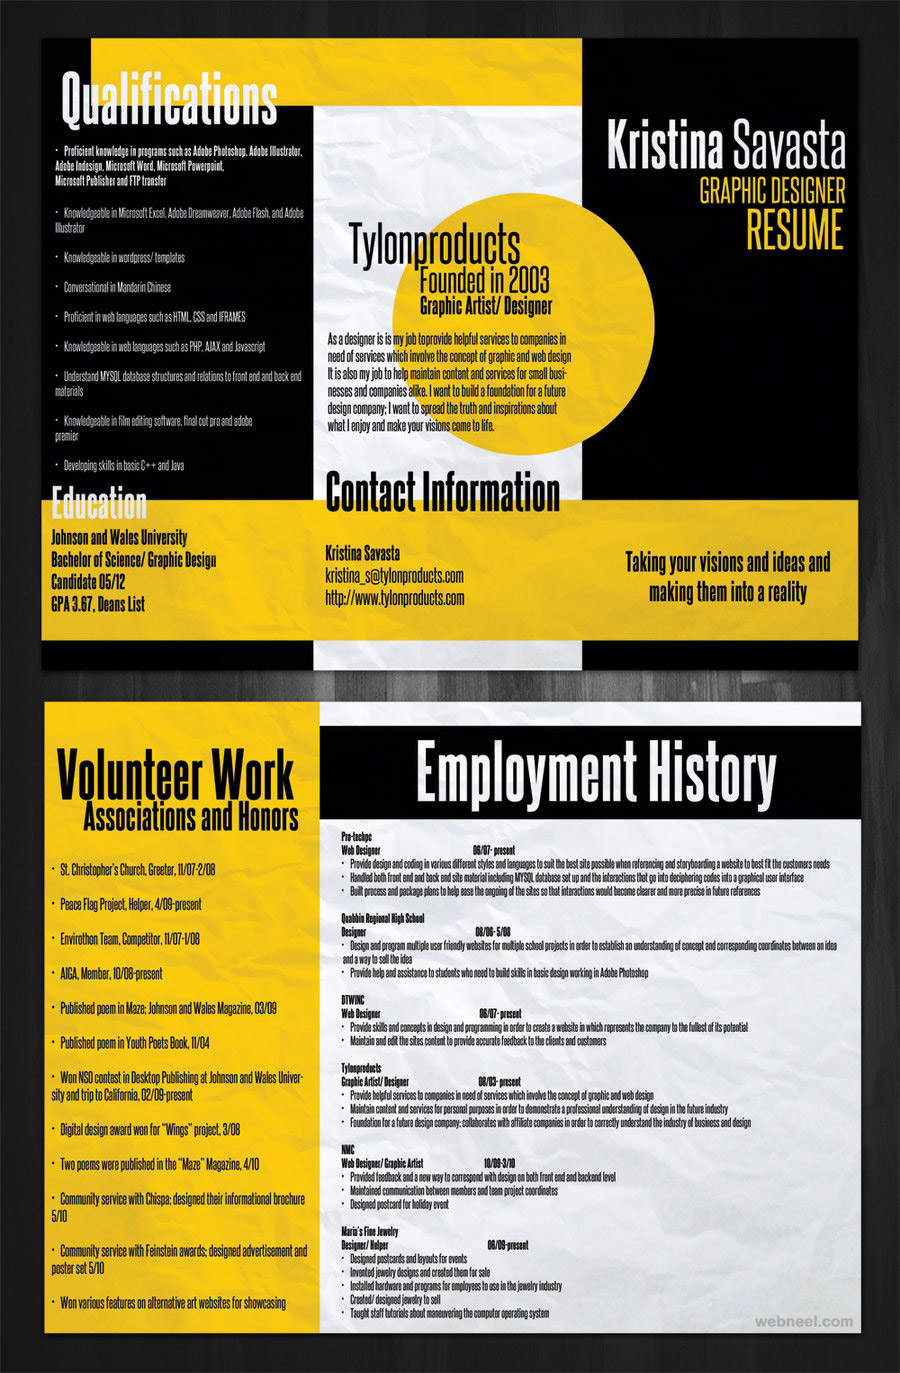 Graphic Designer Resume 2016